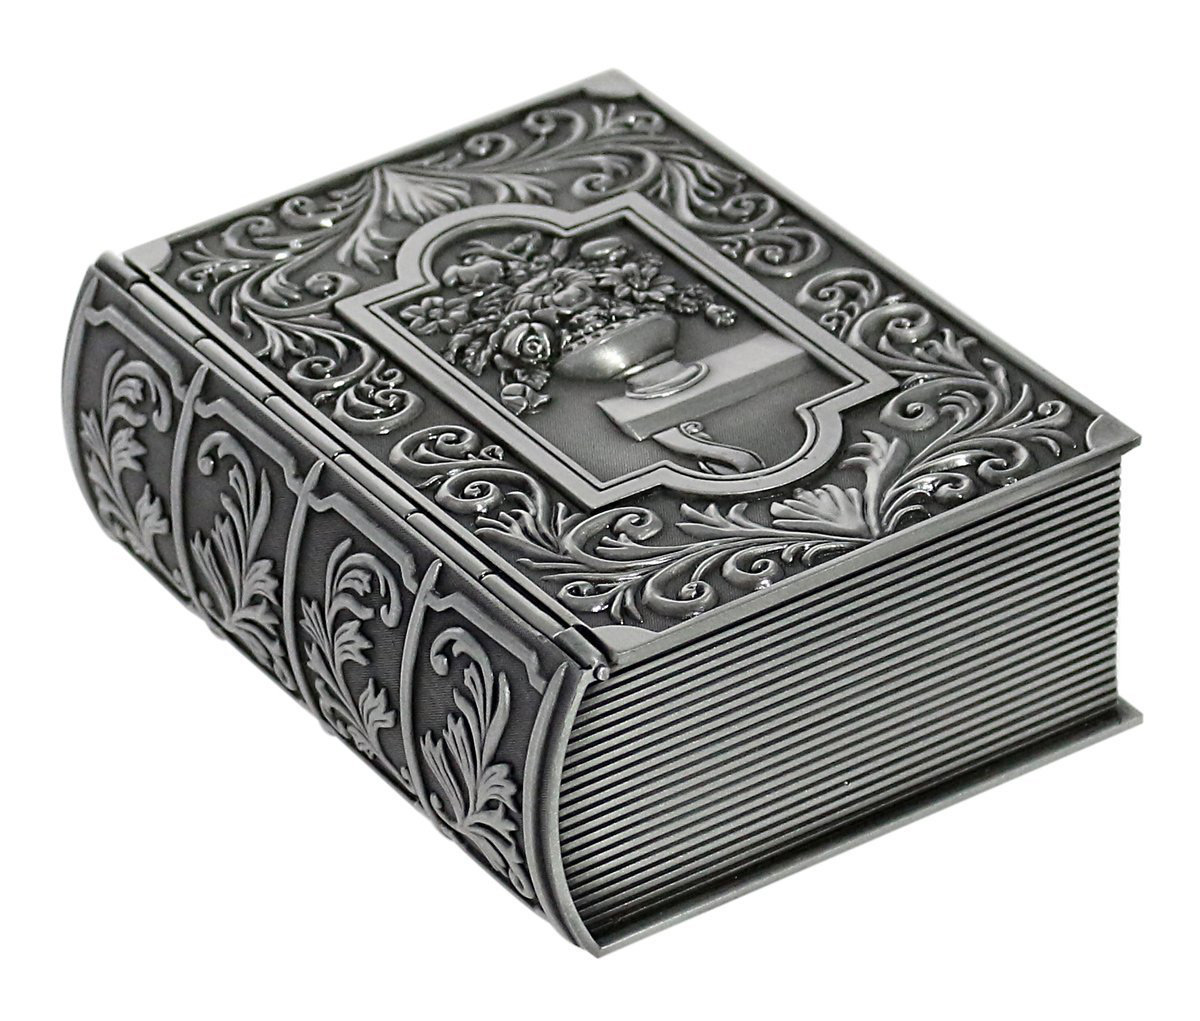 Silver Antique Book Shaped Jewelry Box